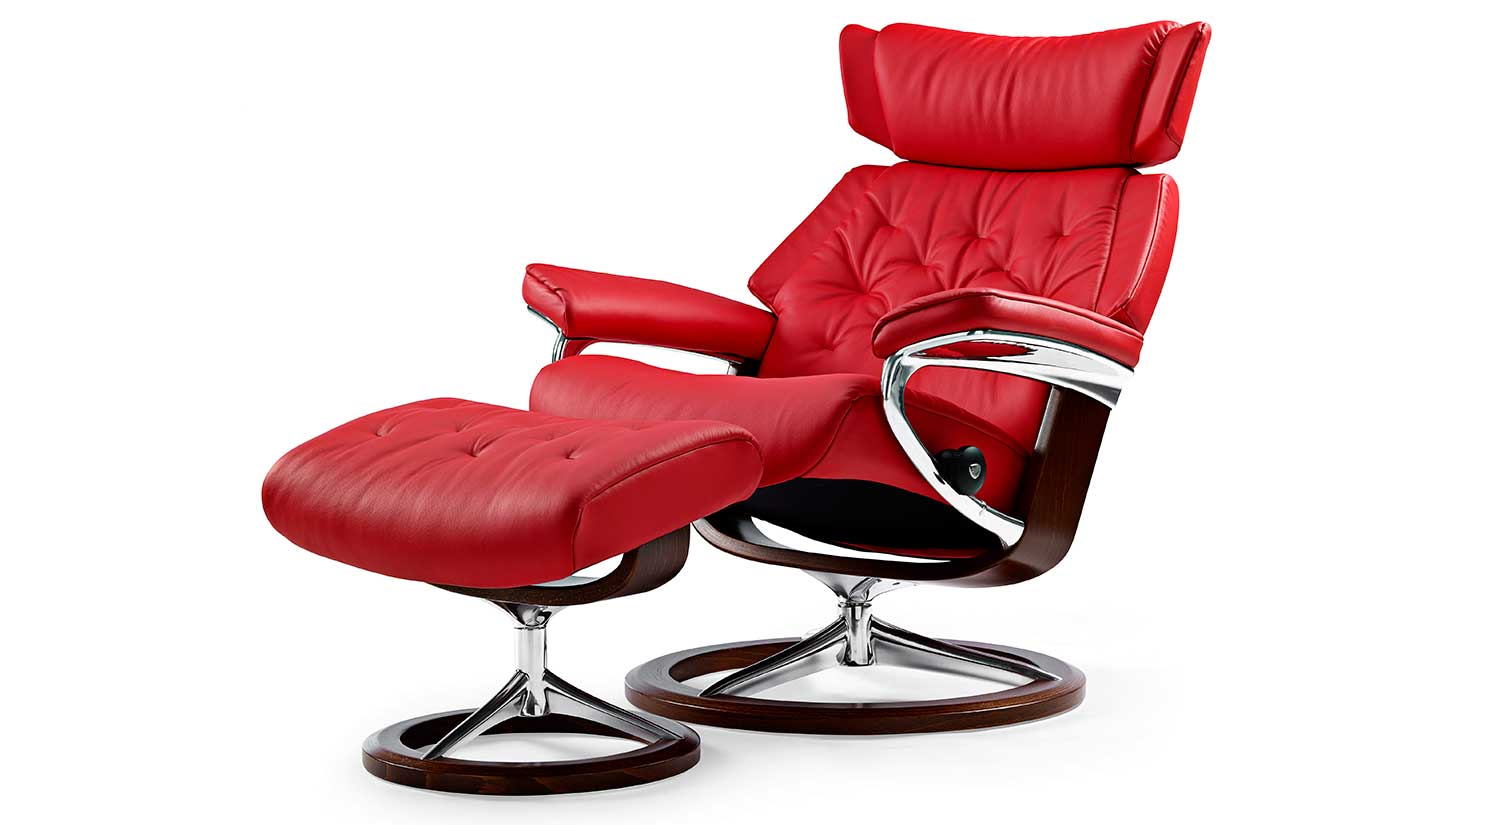 Skyline Stressless Chair and Otto Signature